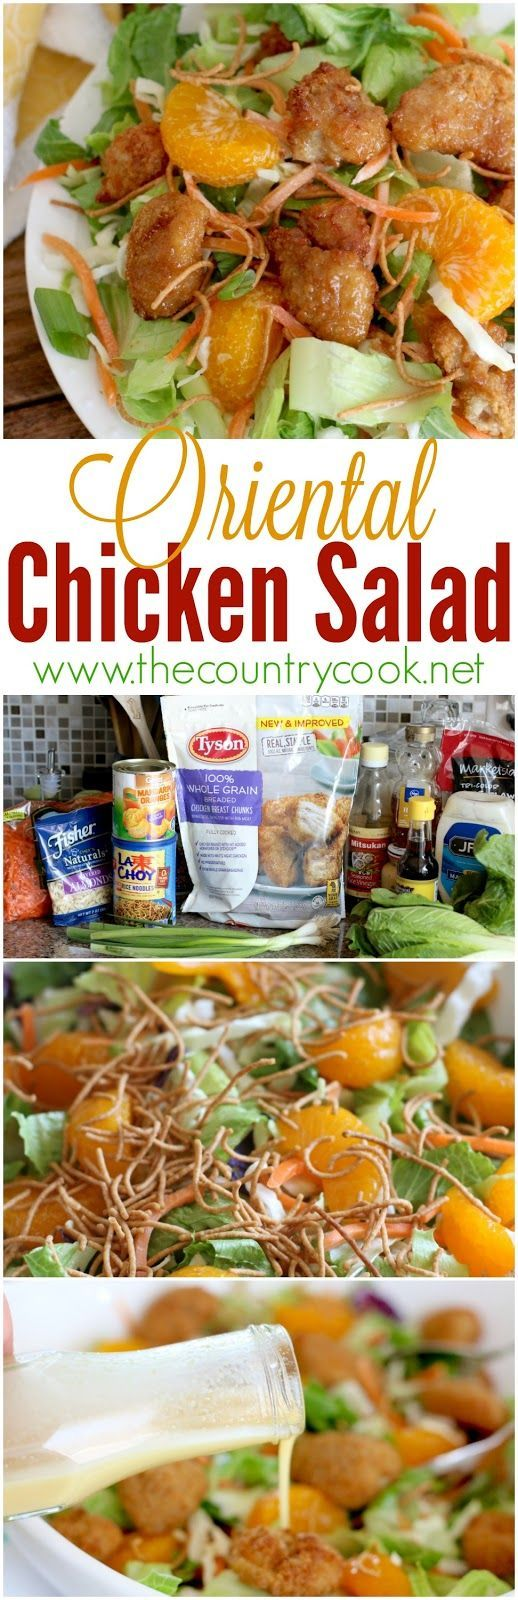 Oriental Chicken Salad recipe from The Country Cook. Just like the one at your favorite restaurant! The dressing is AMAZING. I could eat it on everything! I am in love with making this at home now!